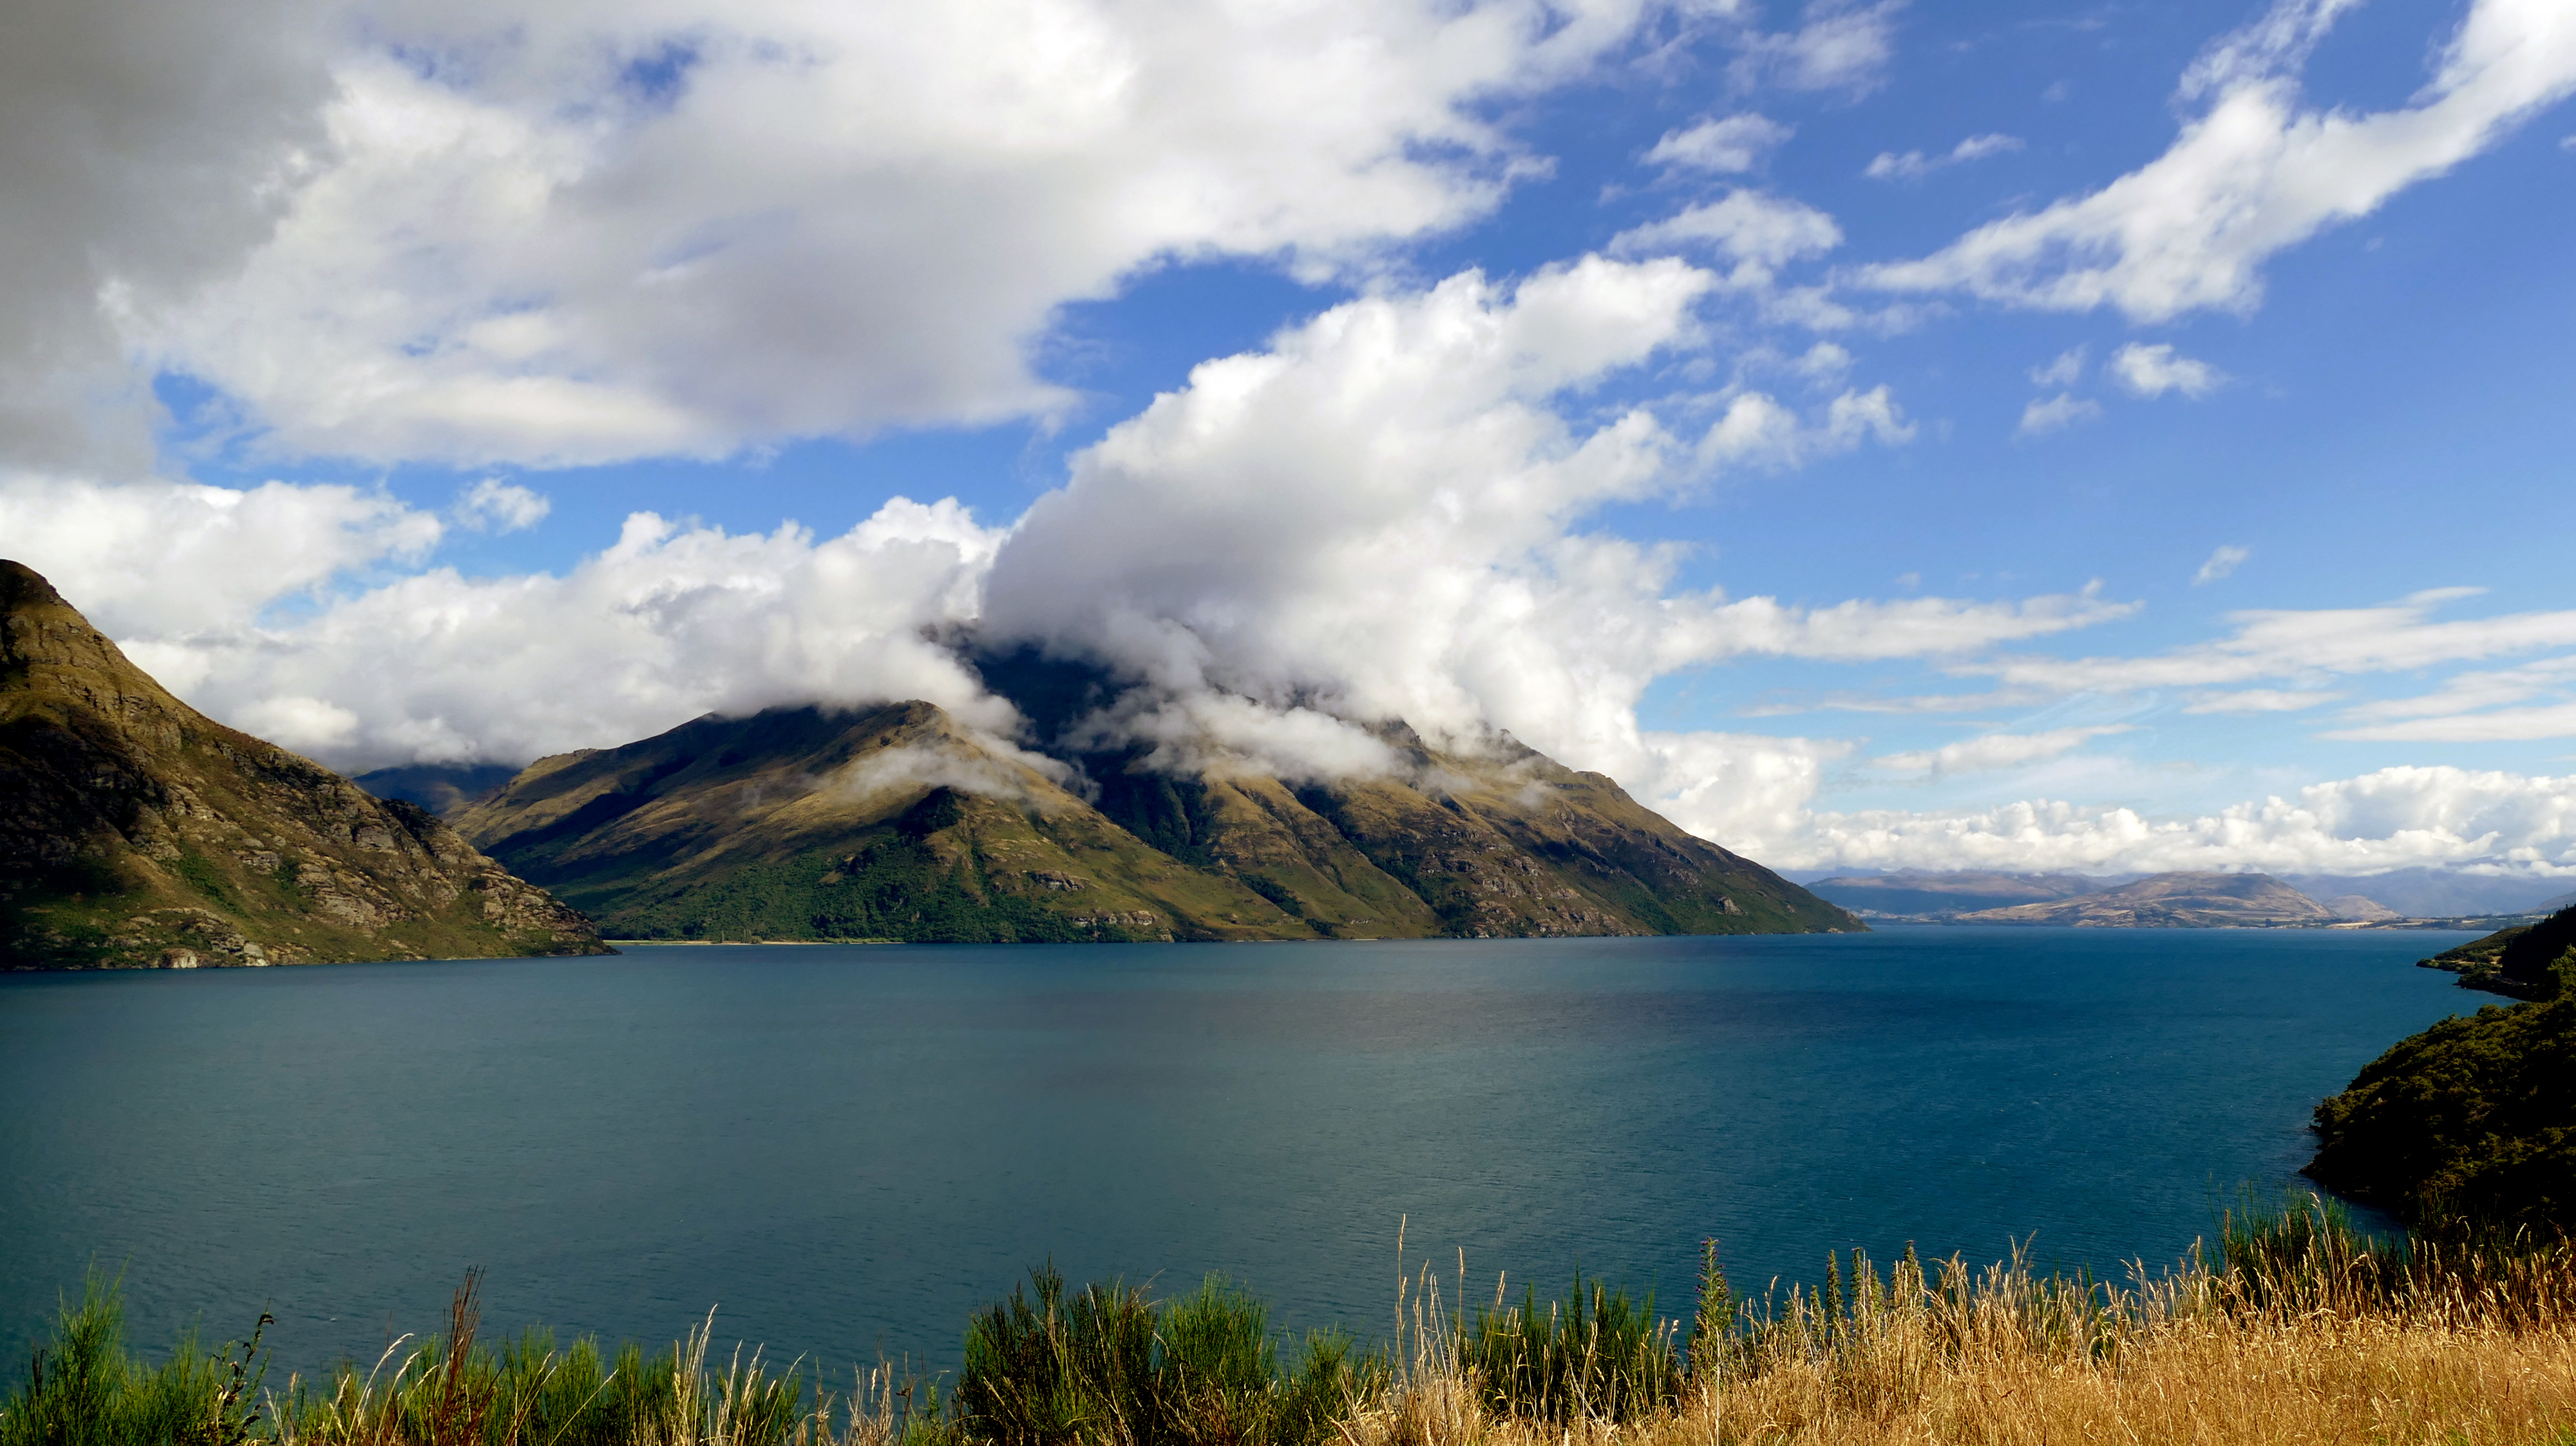 Lake Wakatipu. NZ, Cloud, Free photos, Fz1000, Geo tagged, HQ Photo